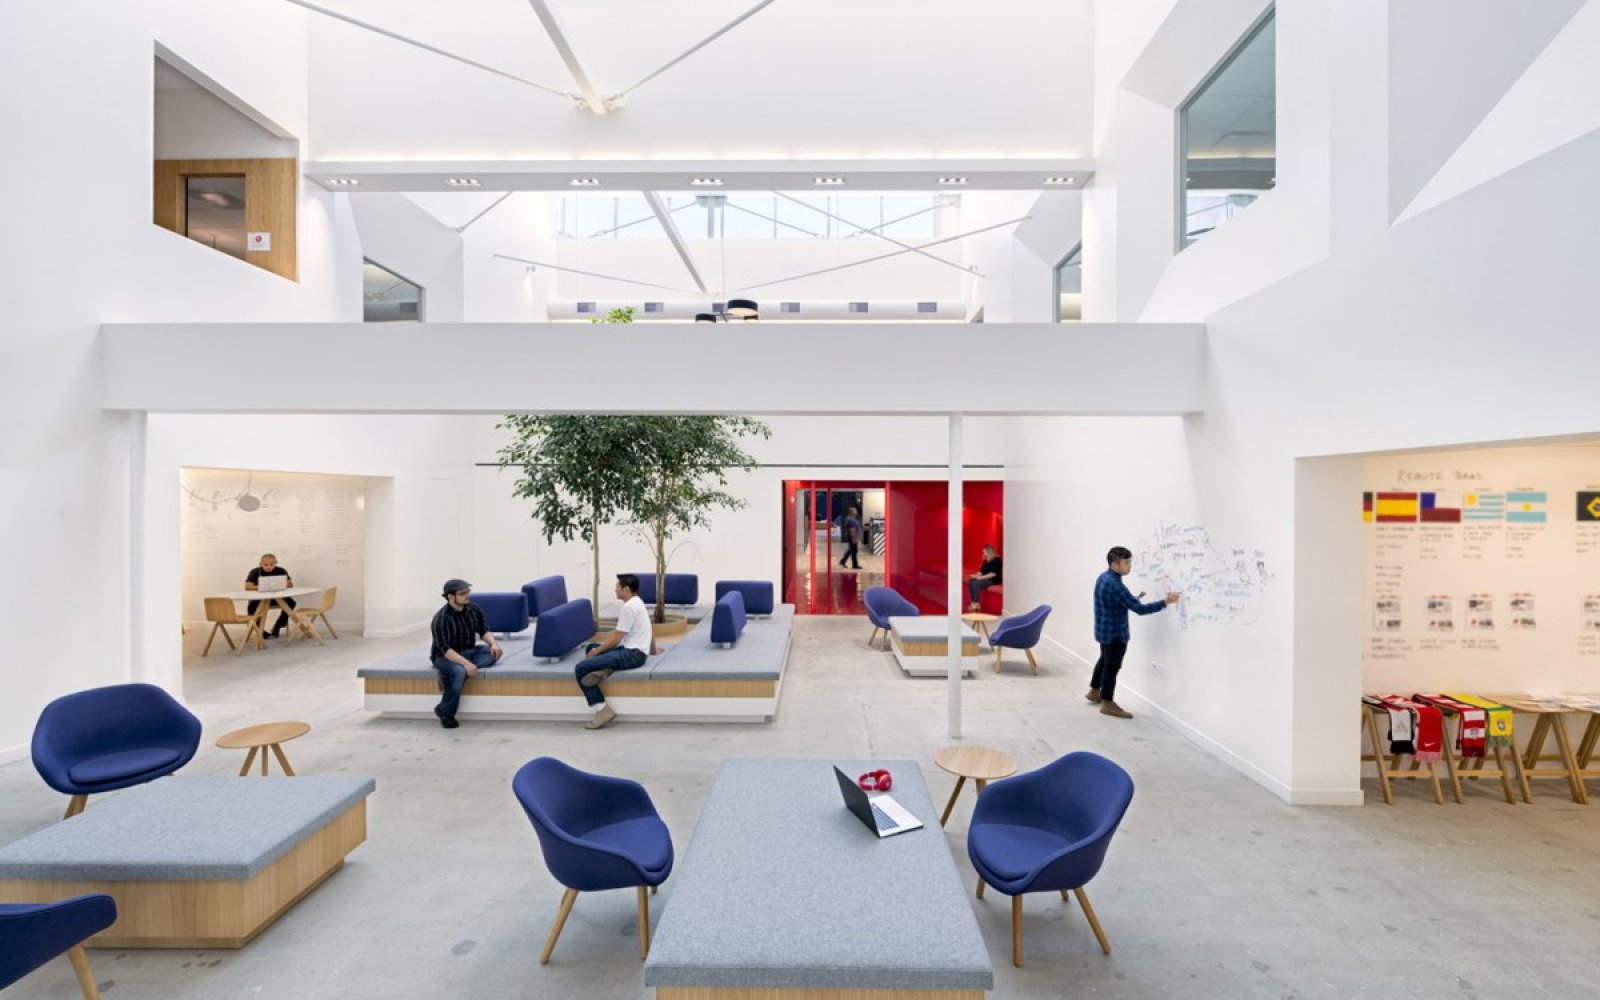 Gallery: Beats' exotic 105,000 sq ft office in California